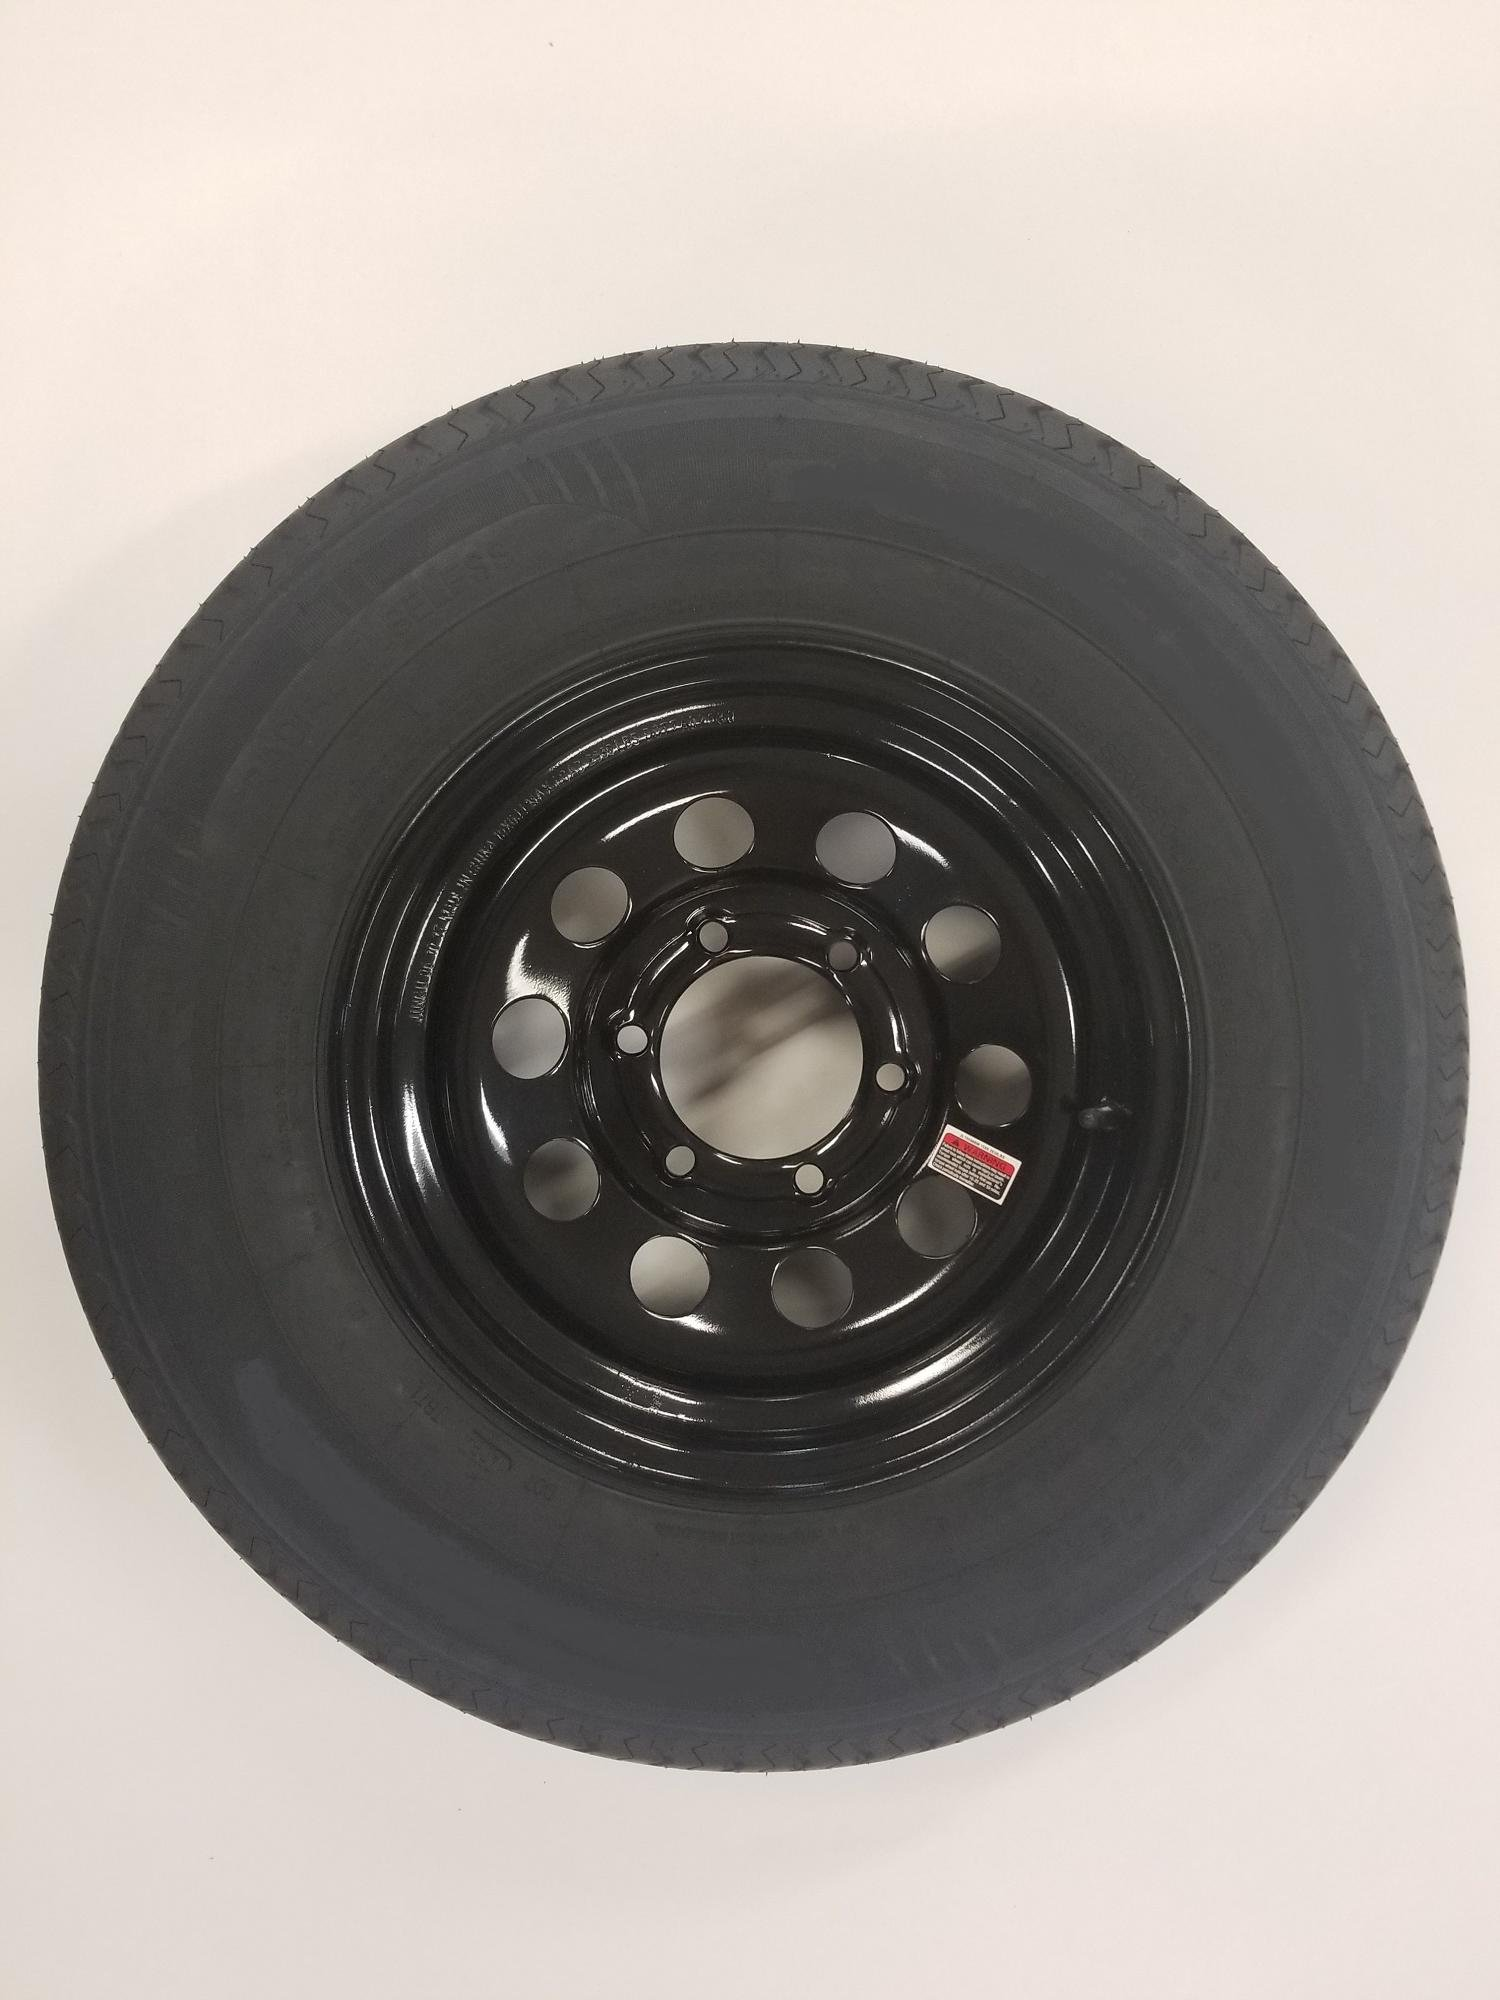 15″ Black Mod Trailer Wheel 6 Lug with Radial ST225/75R15 Tire Mounted (6×5.5) bolt circle